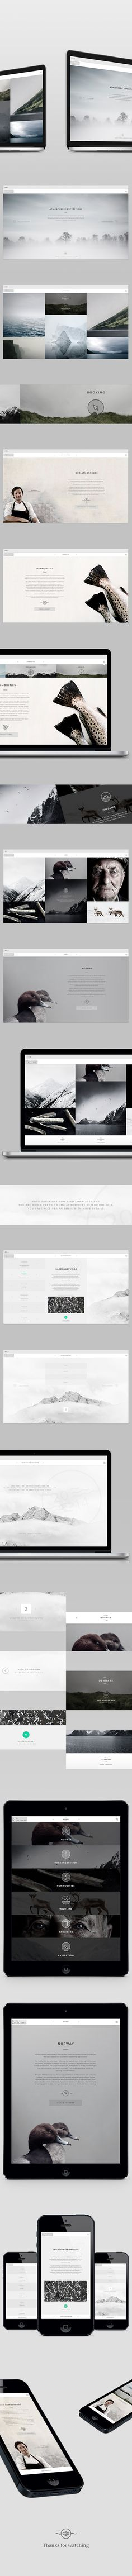 Noma Atmosphere by Jacob Mattesen Hansen, via Behance- fresh, clean cut and easy to read. Nice